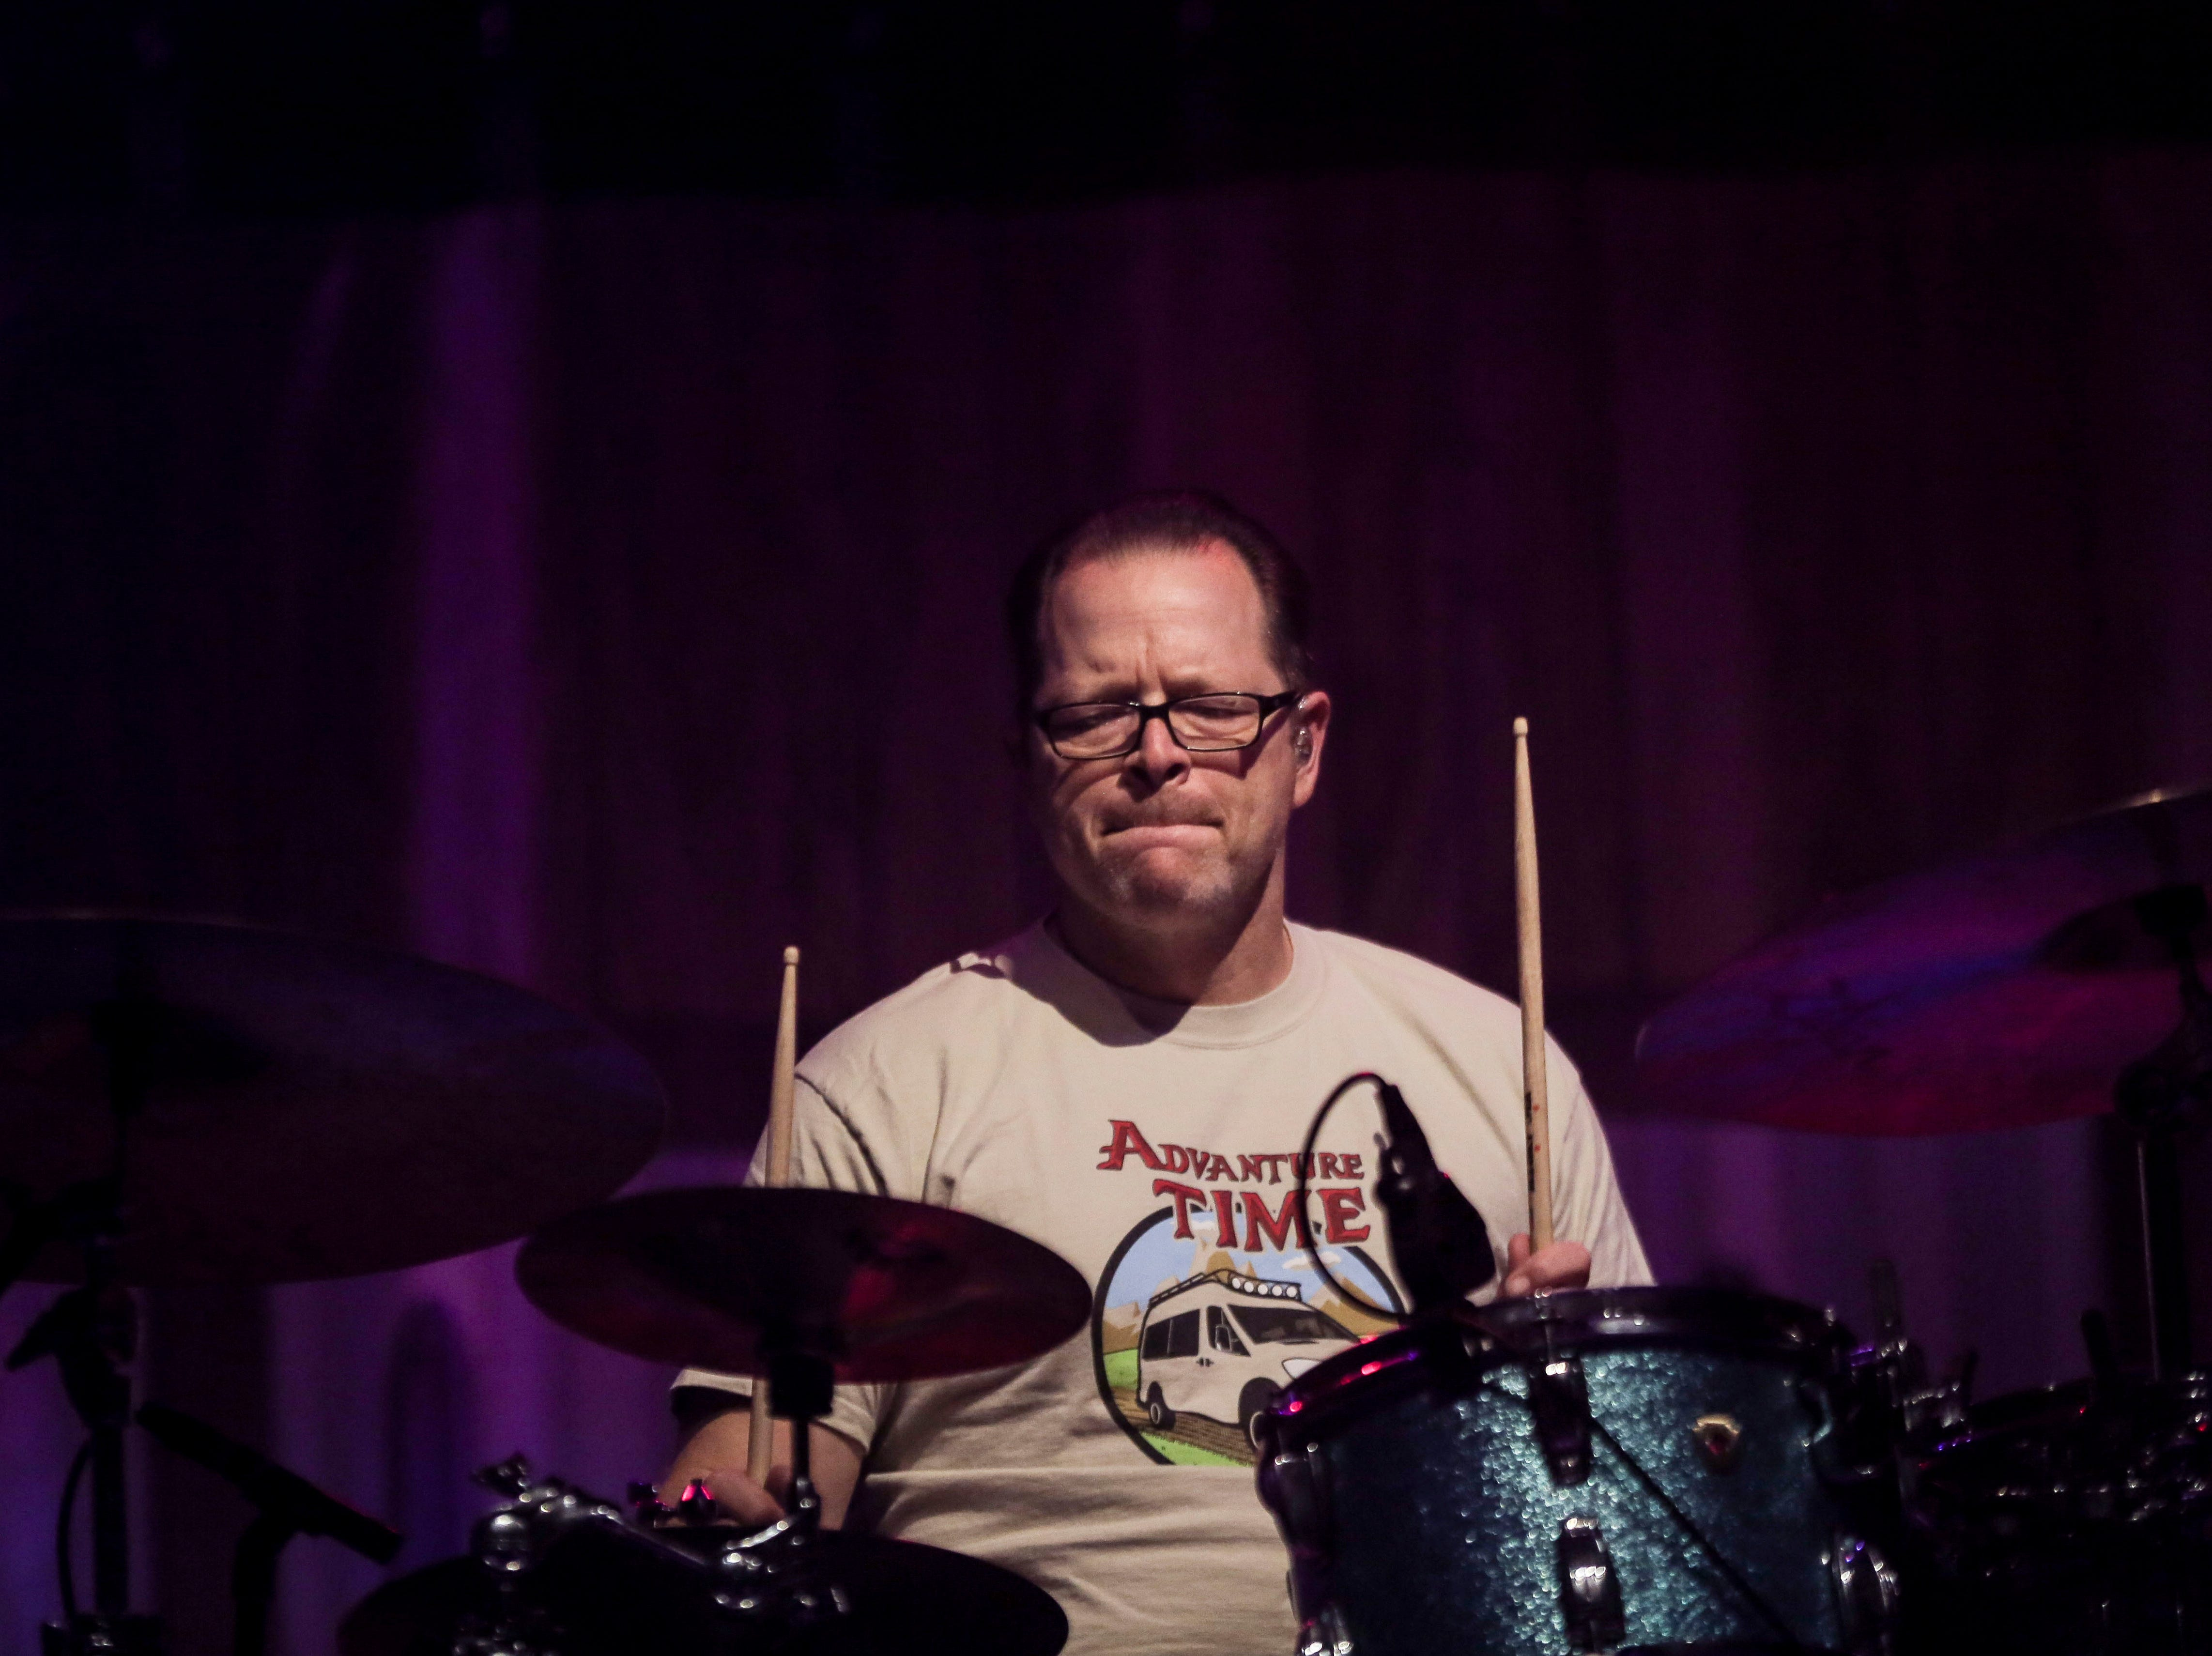 Patrick Wilson, drummer in Weezer, performs during the first show of the Weezer x Pixies 2019 tour at the KFC Yum! Center in downtown Louisville, Ky. on Friday, March 8, 2019.